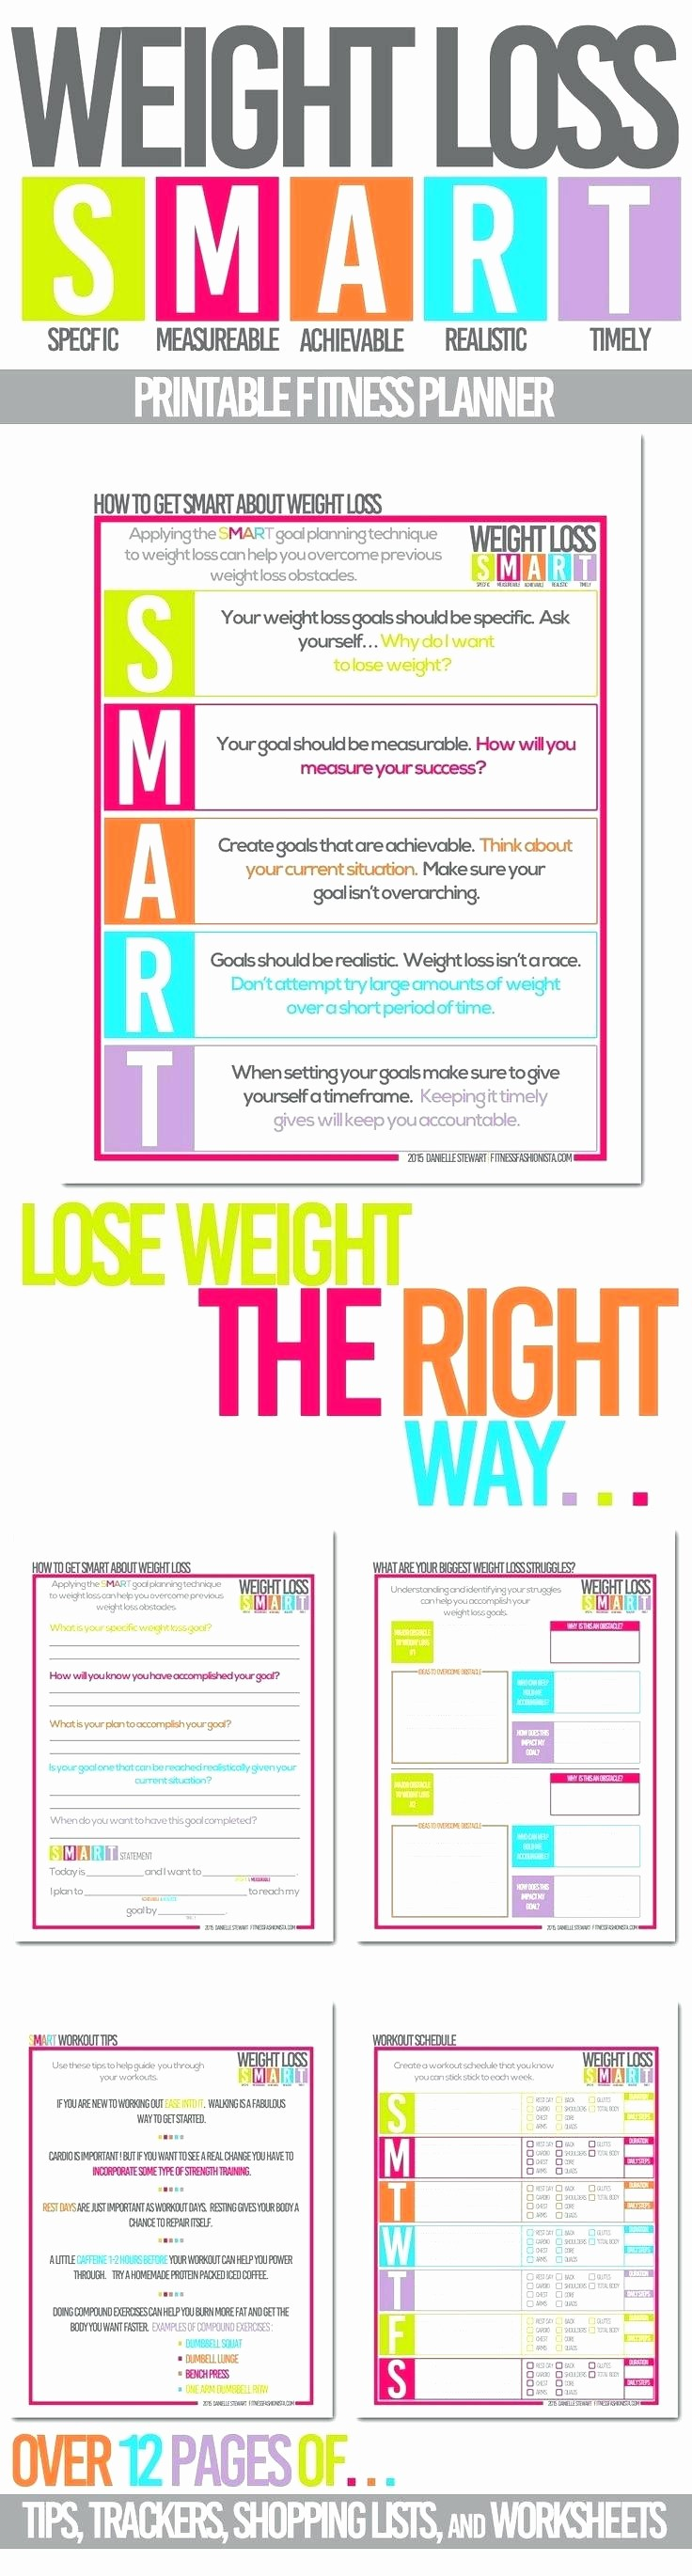 Weight Loss Challenge Flyer Template Luxury Weight Loss Challenge Flyer Template Outletsonlinefo